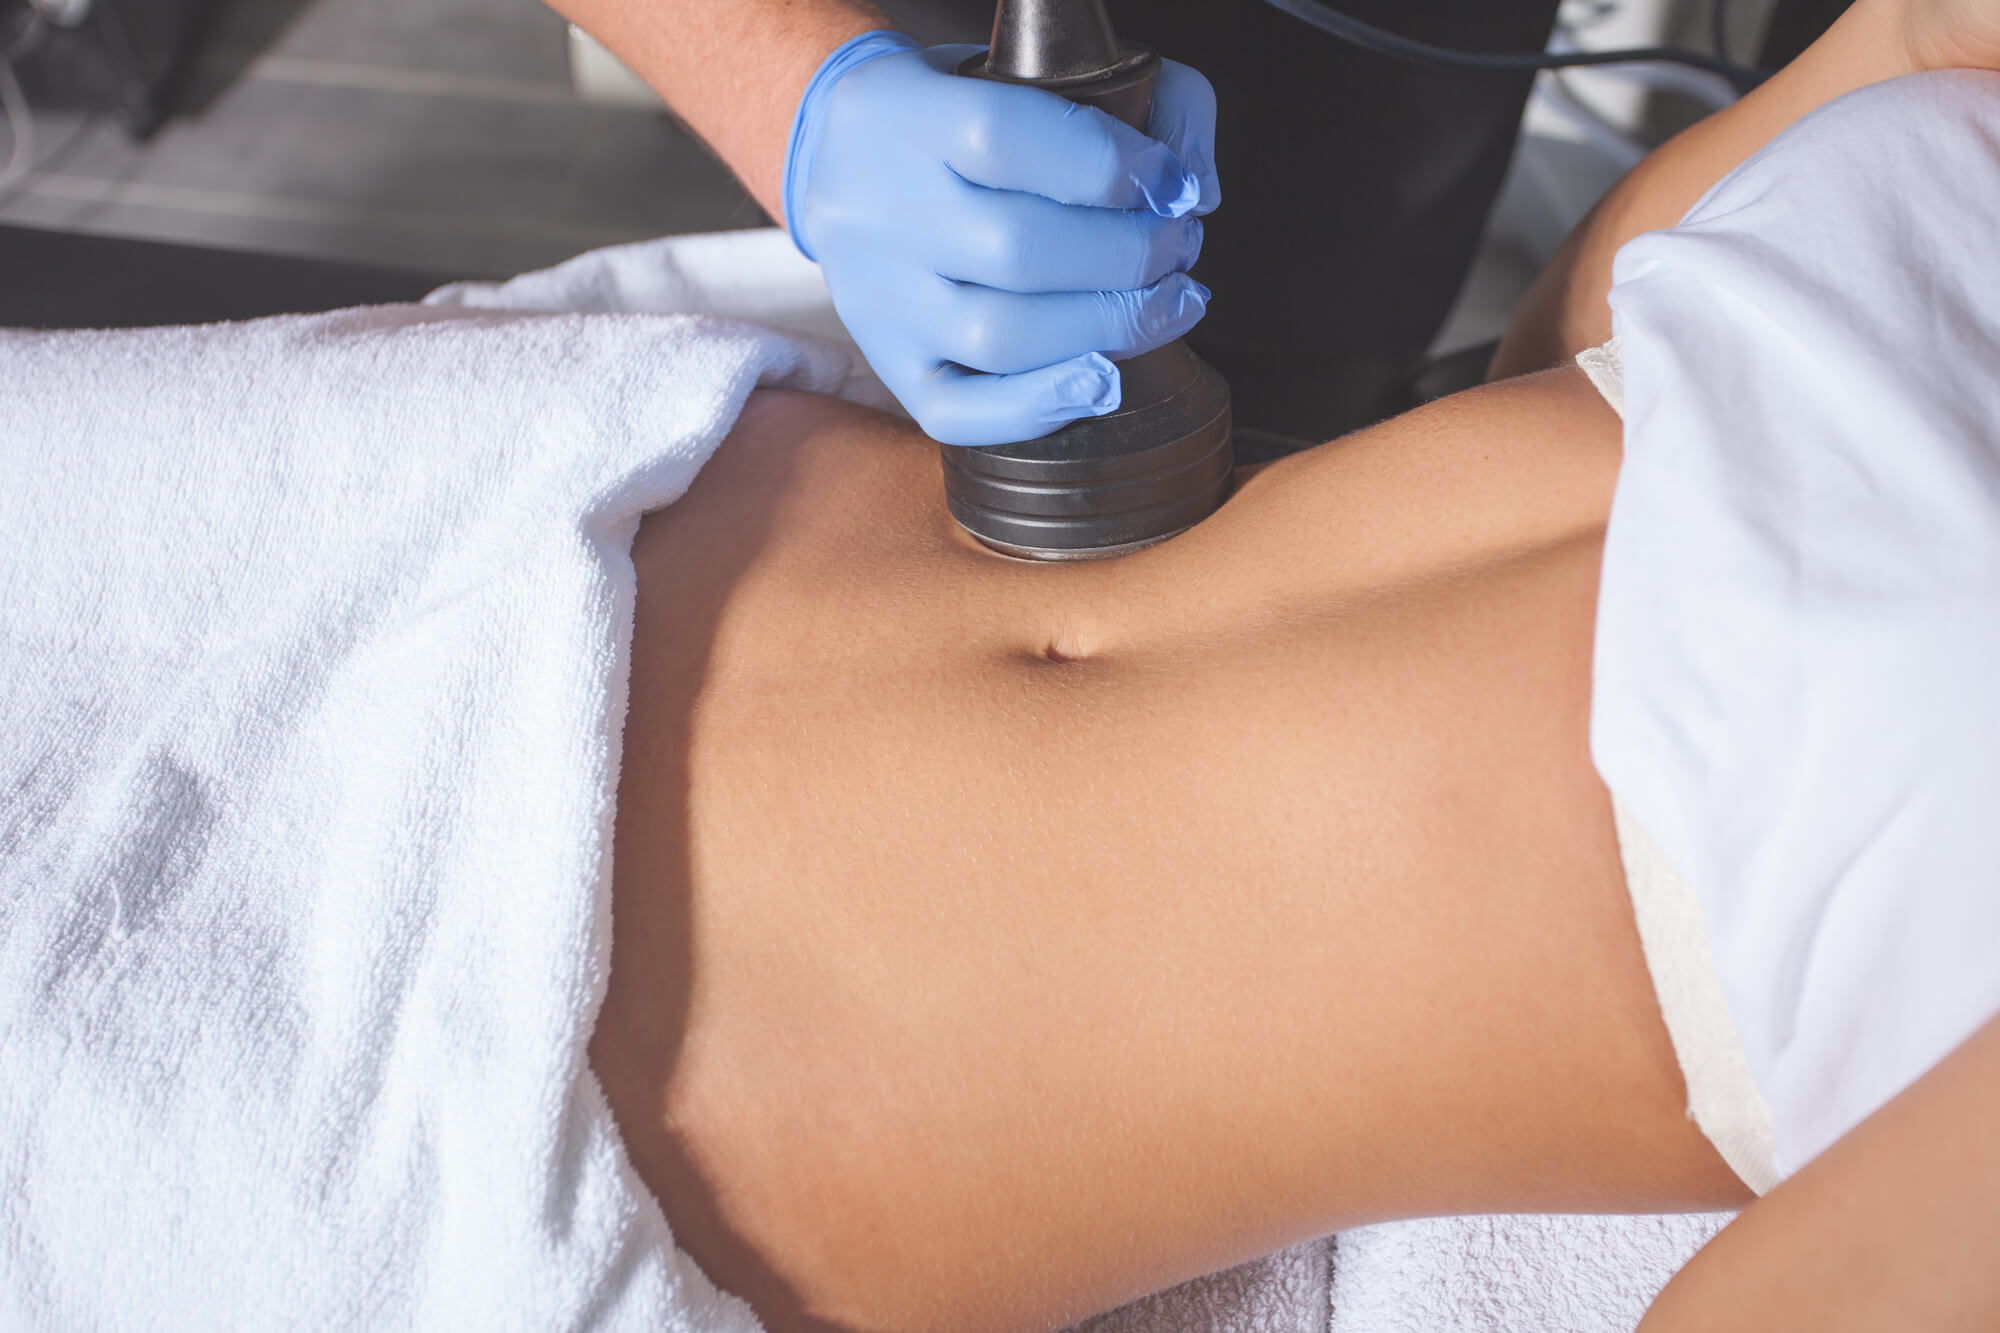 Why Laser Body Contouring is the Way to Go